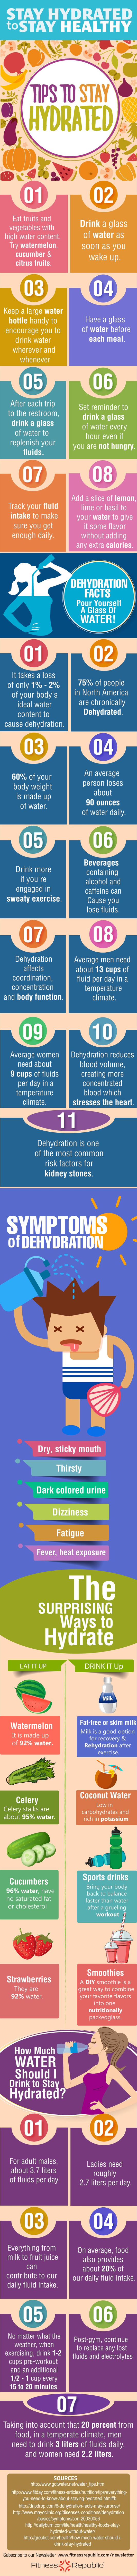 Not drinking enough water before a morning run? Soaking through your sports bra during a workout and not guzzling enough? Well, these are surefire ways to get you dehydrated.